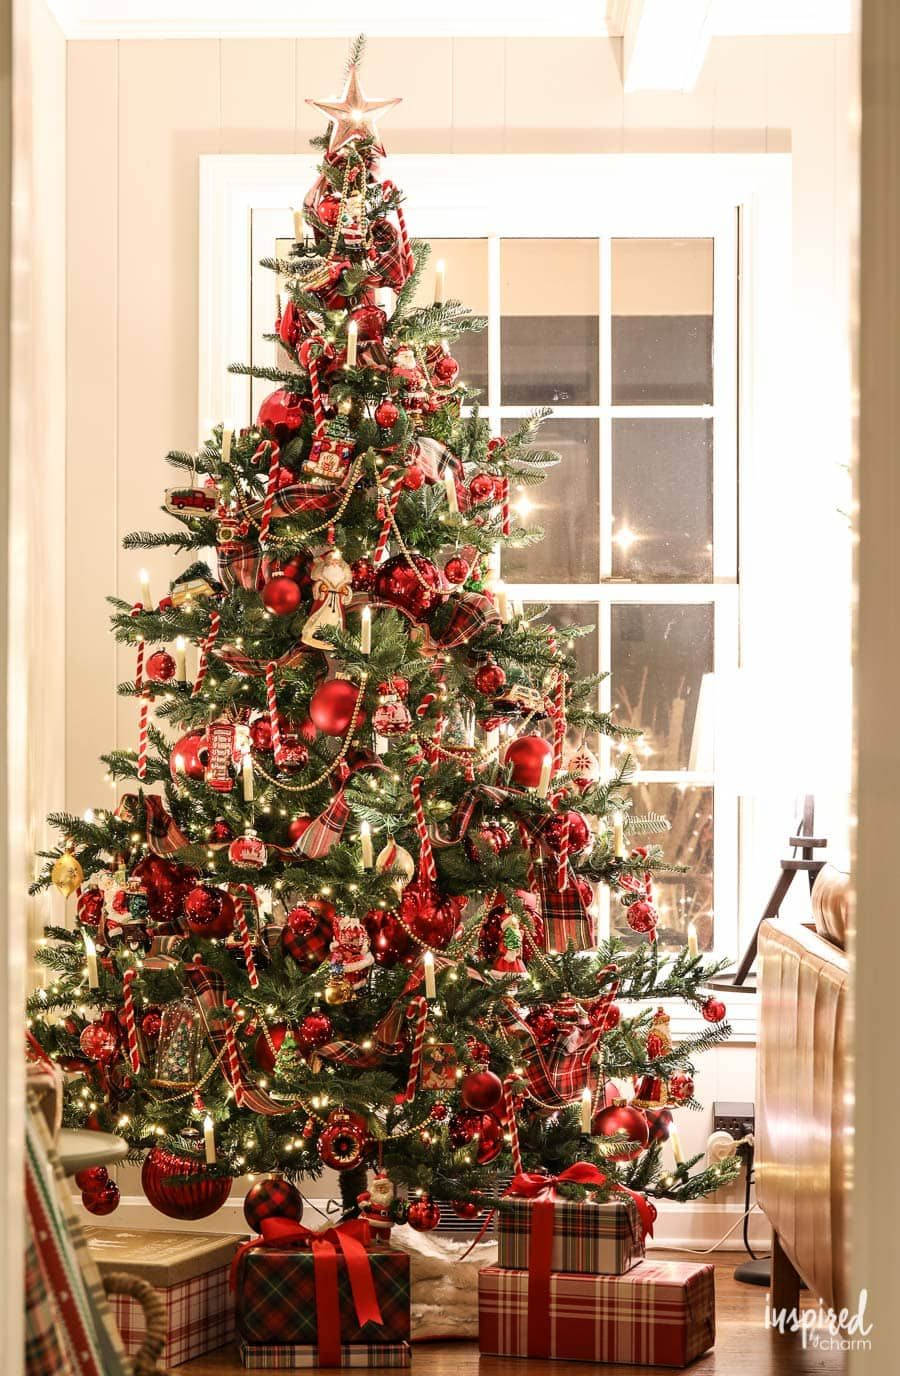 When Is The White House Decorated For The 2020 Thanksgiving-Christmas Holidays? Evening at Bayberry House: Christmas 2018 #christmas #holiday